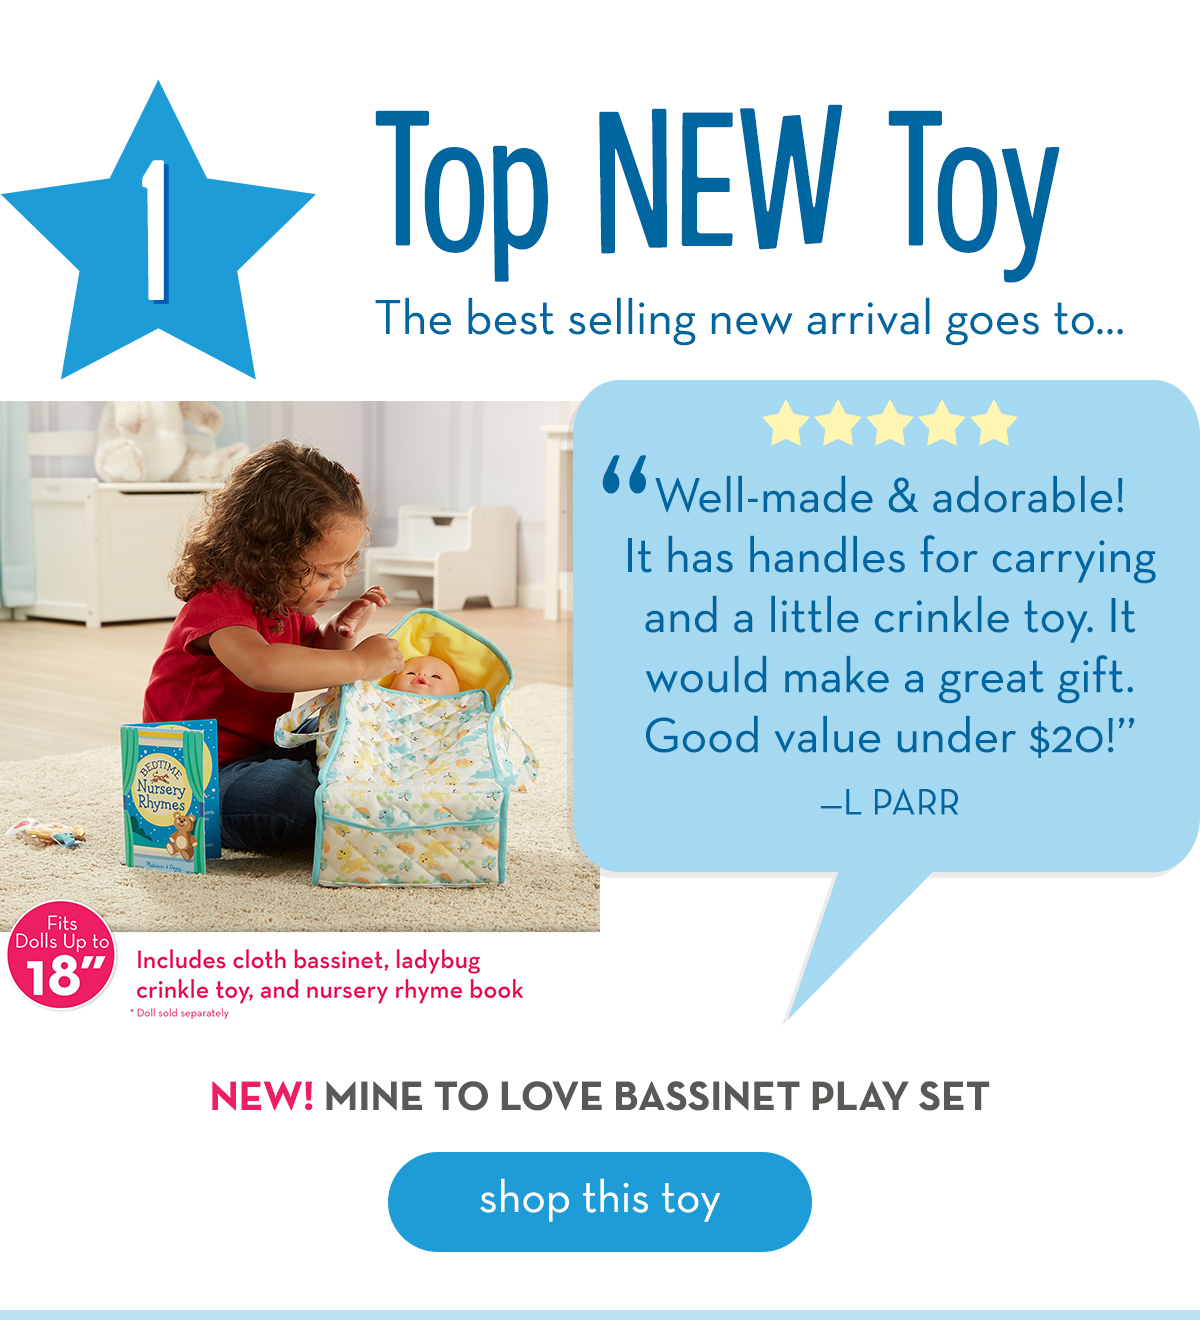 1. Top NEW Toy: The best selling new arrival goes to... NEW! Mine to Love Bassinet Play Set